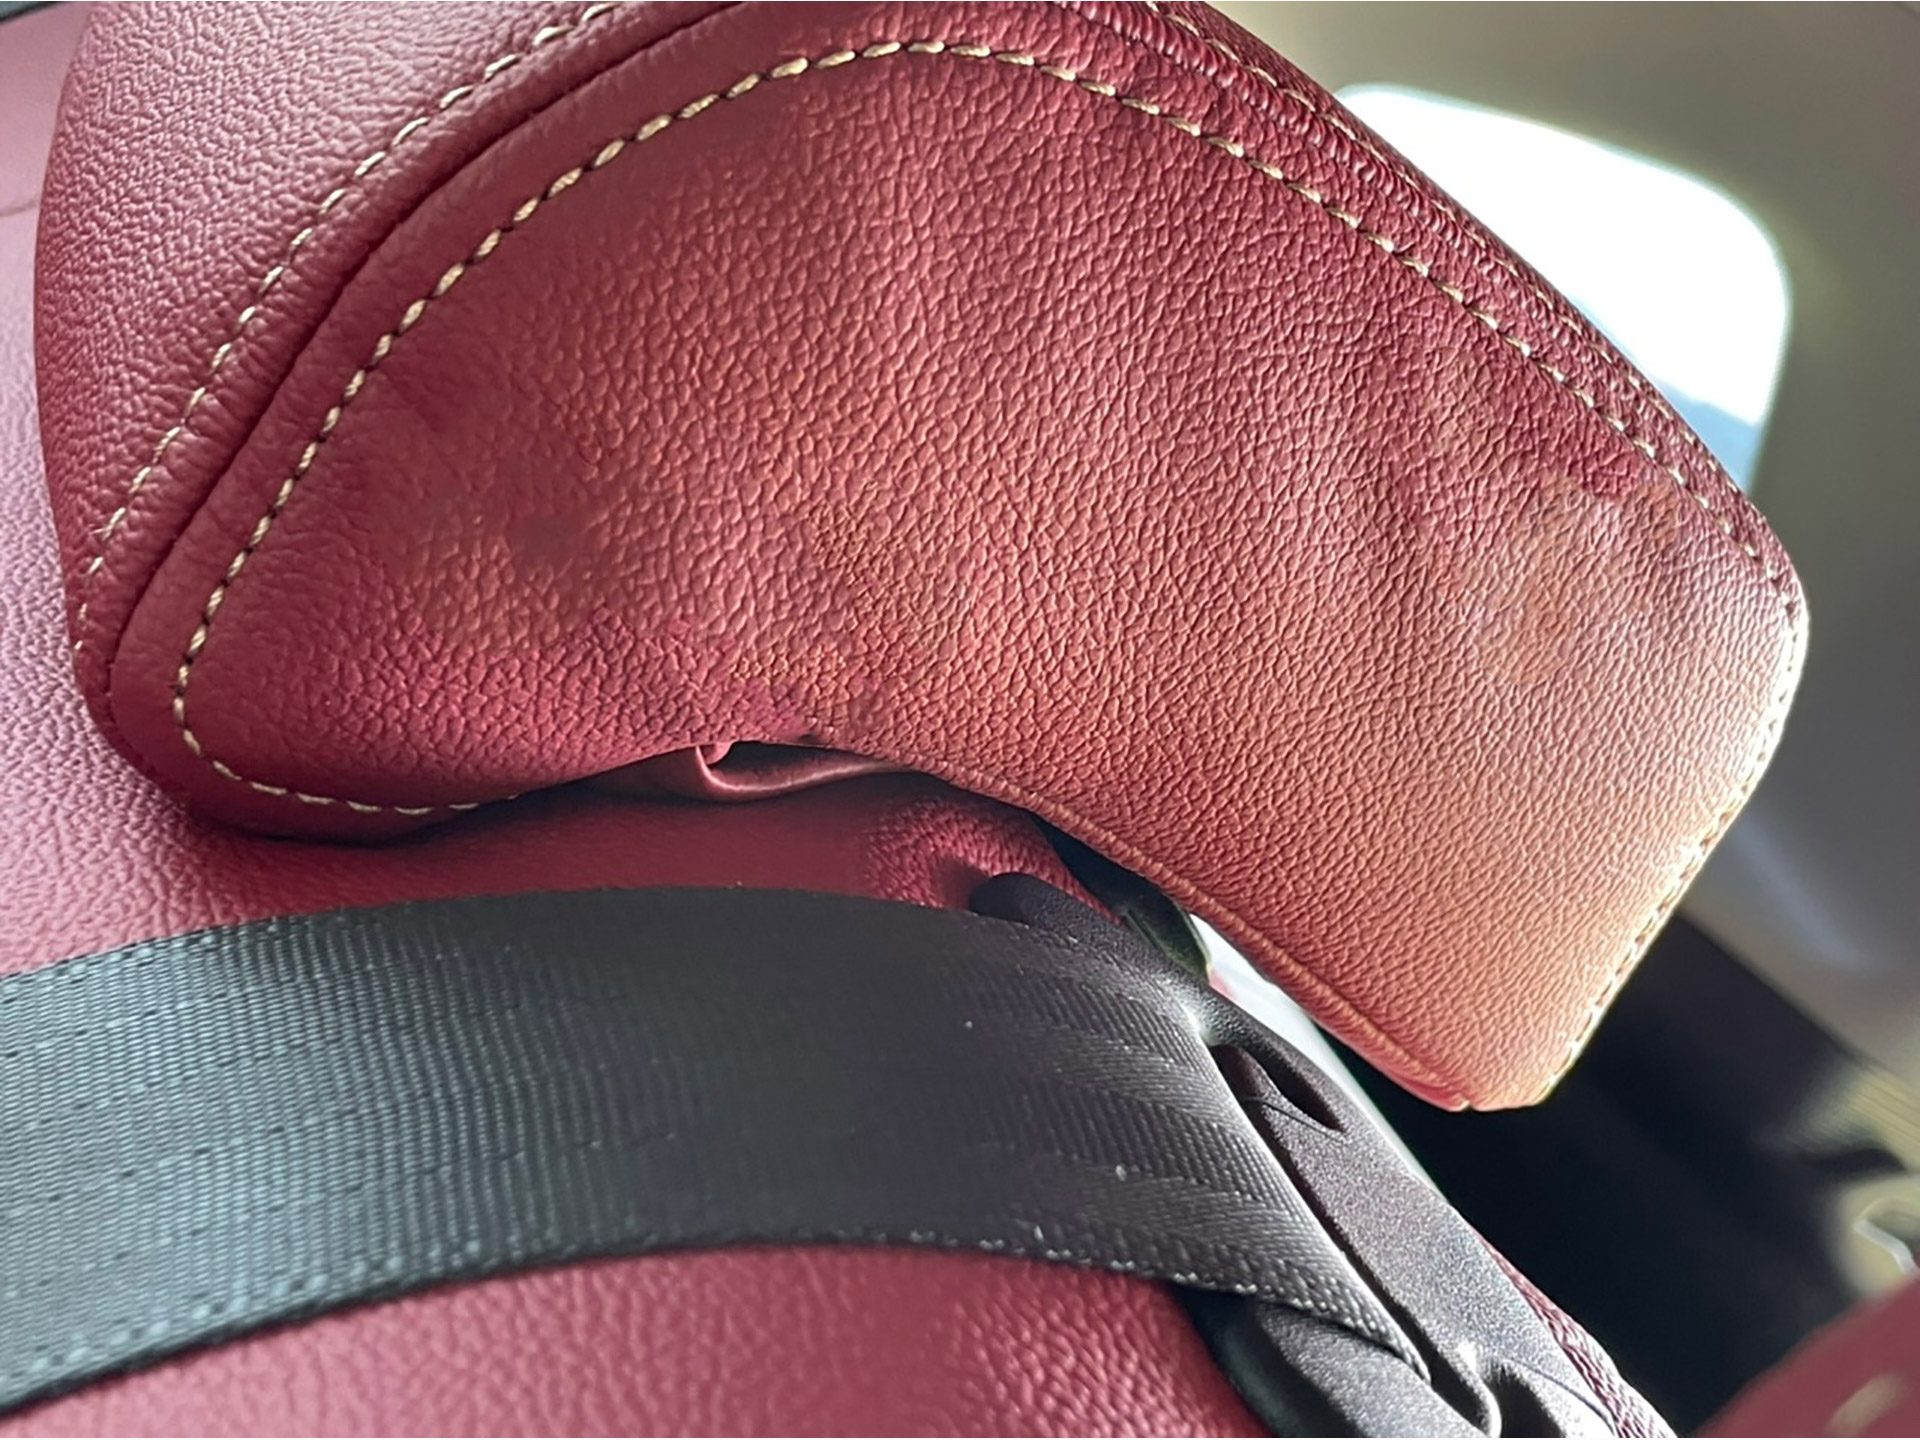 Refinad Leather Deluxe Series